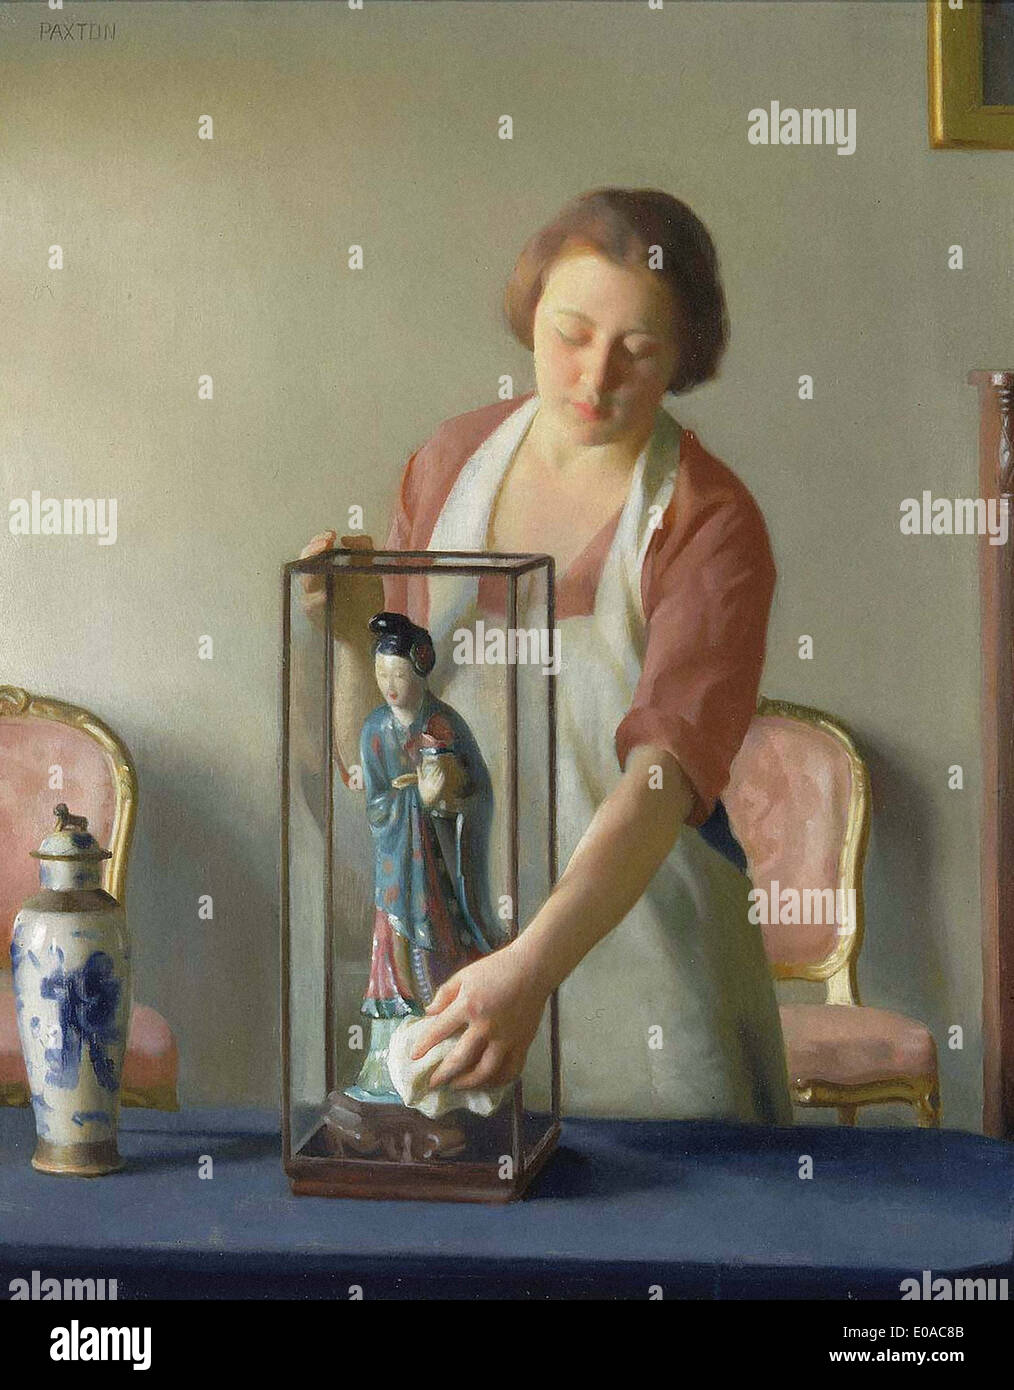 William Paxton The Figurine - Stock Image